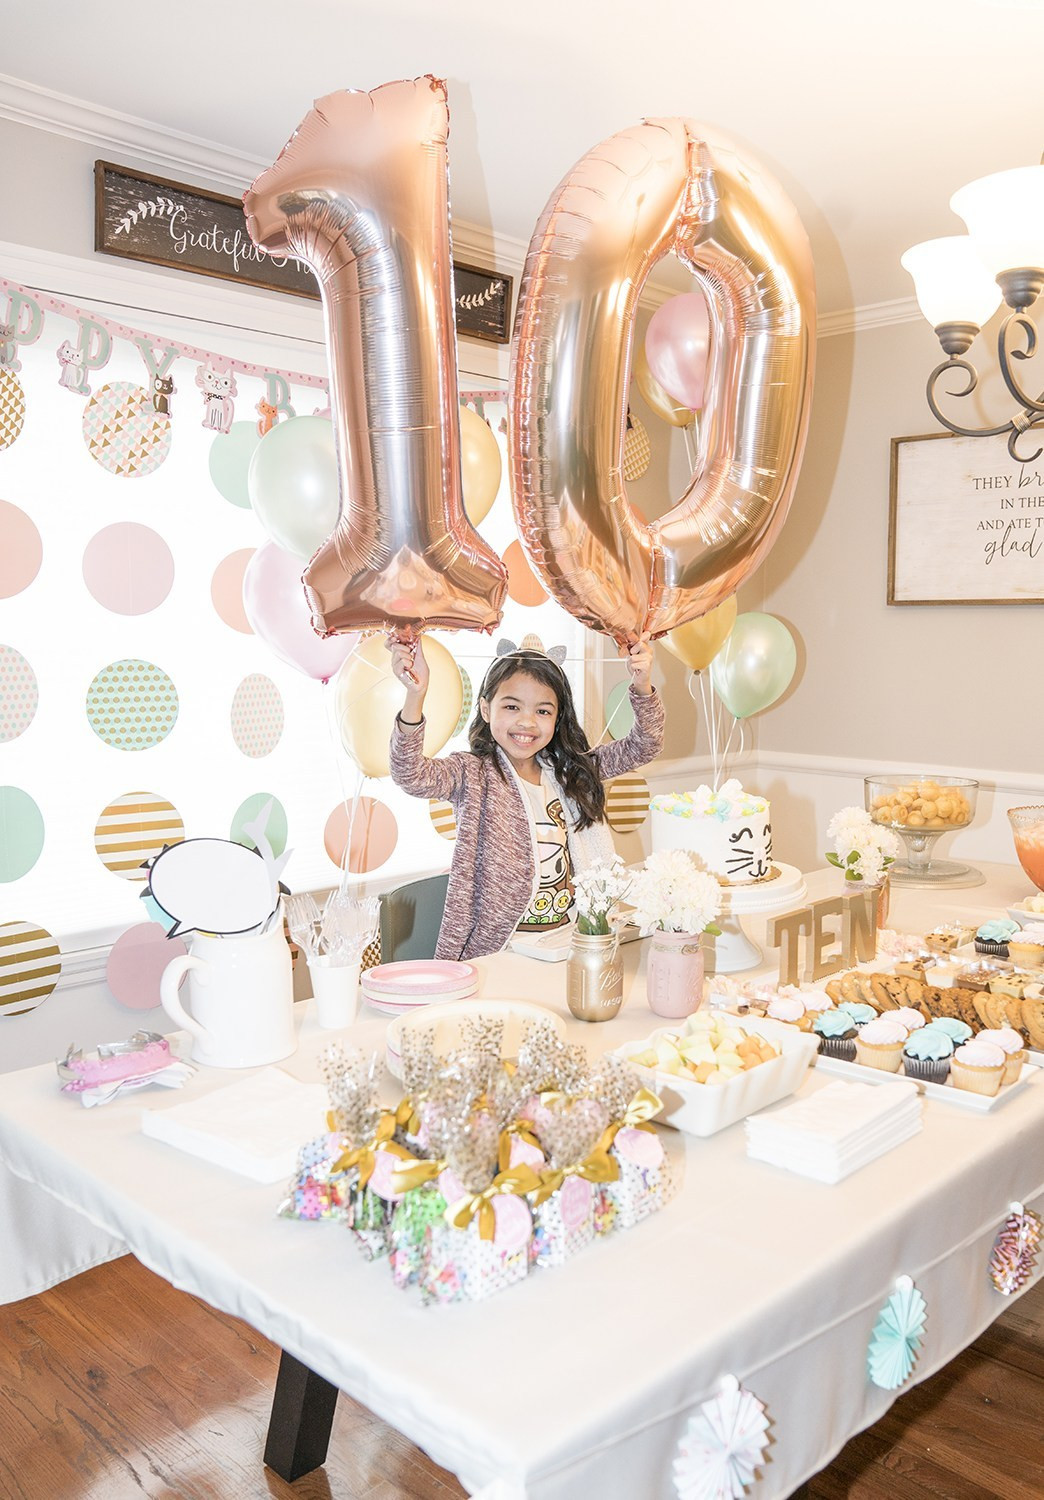 Best ideas about Birthday Party Ideas For Girls . Save or Pin Girls 10th Birthday Party Ideas Now.